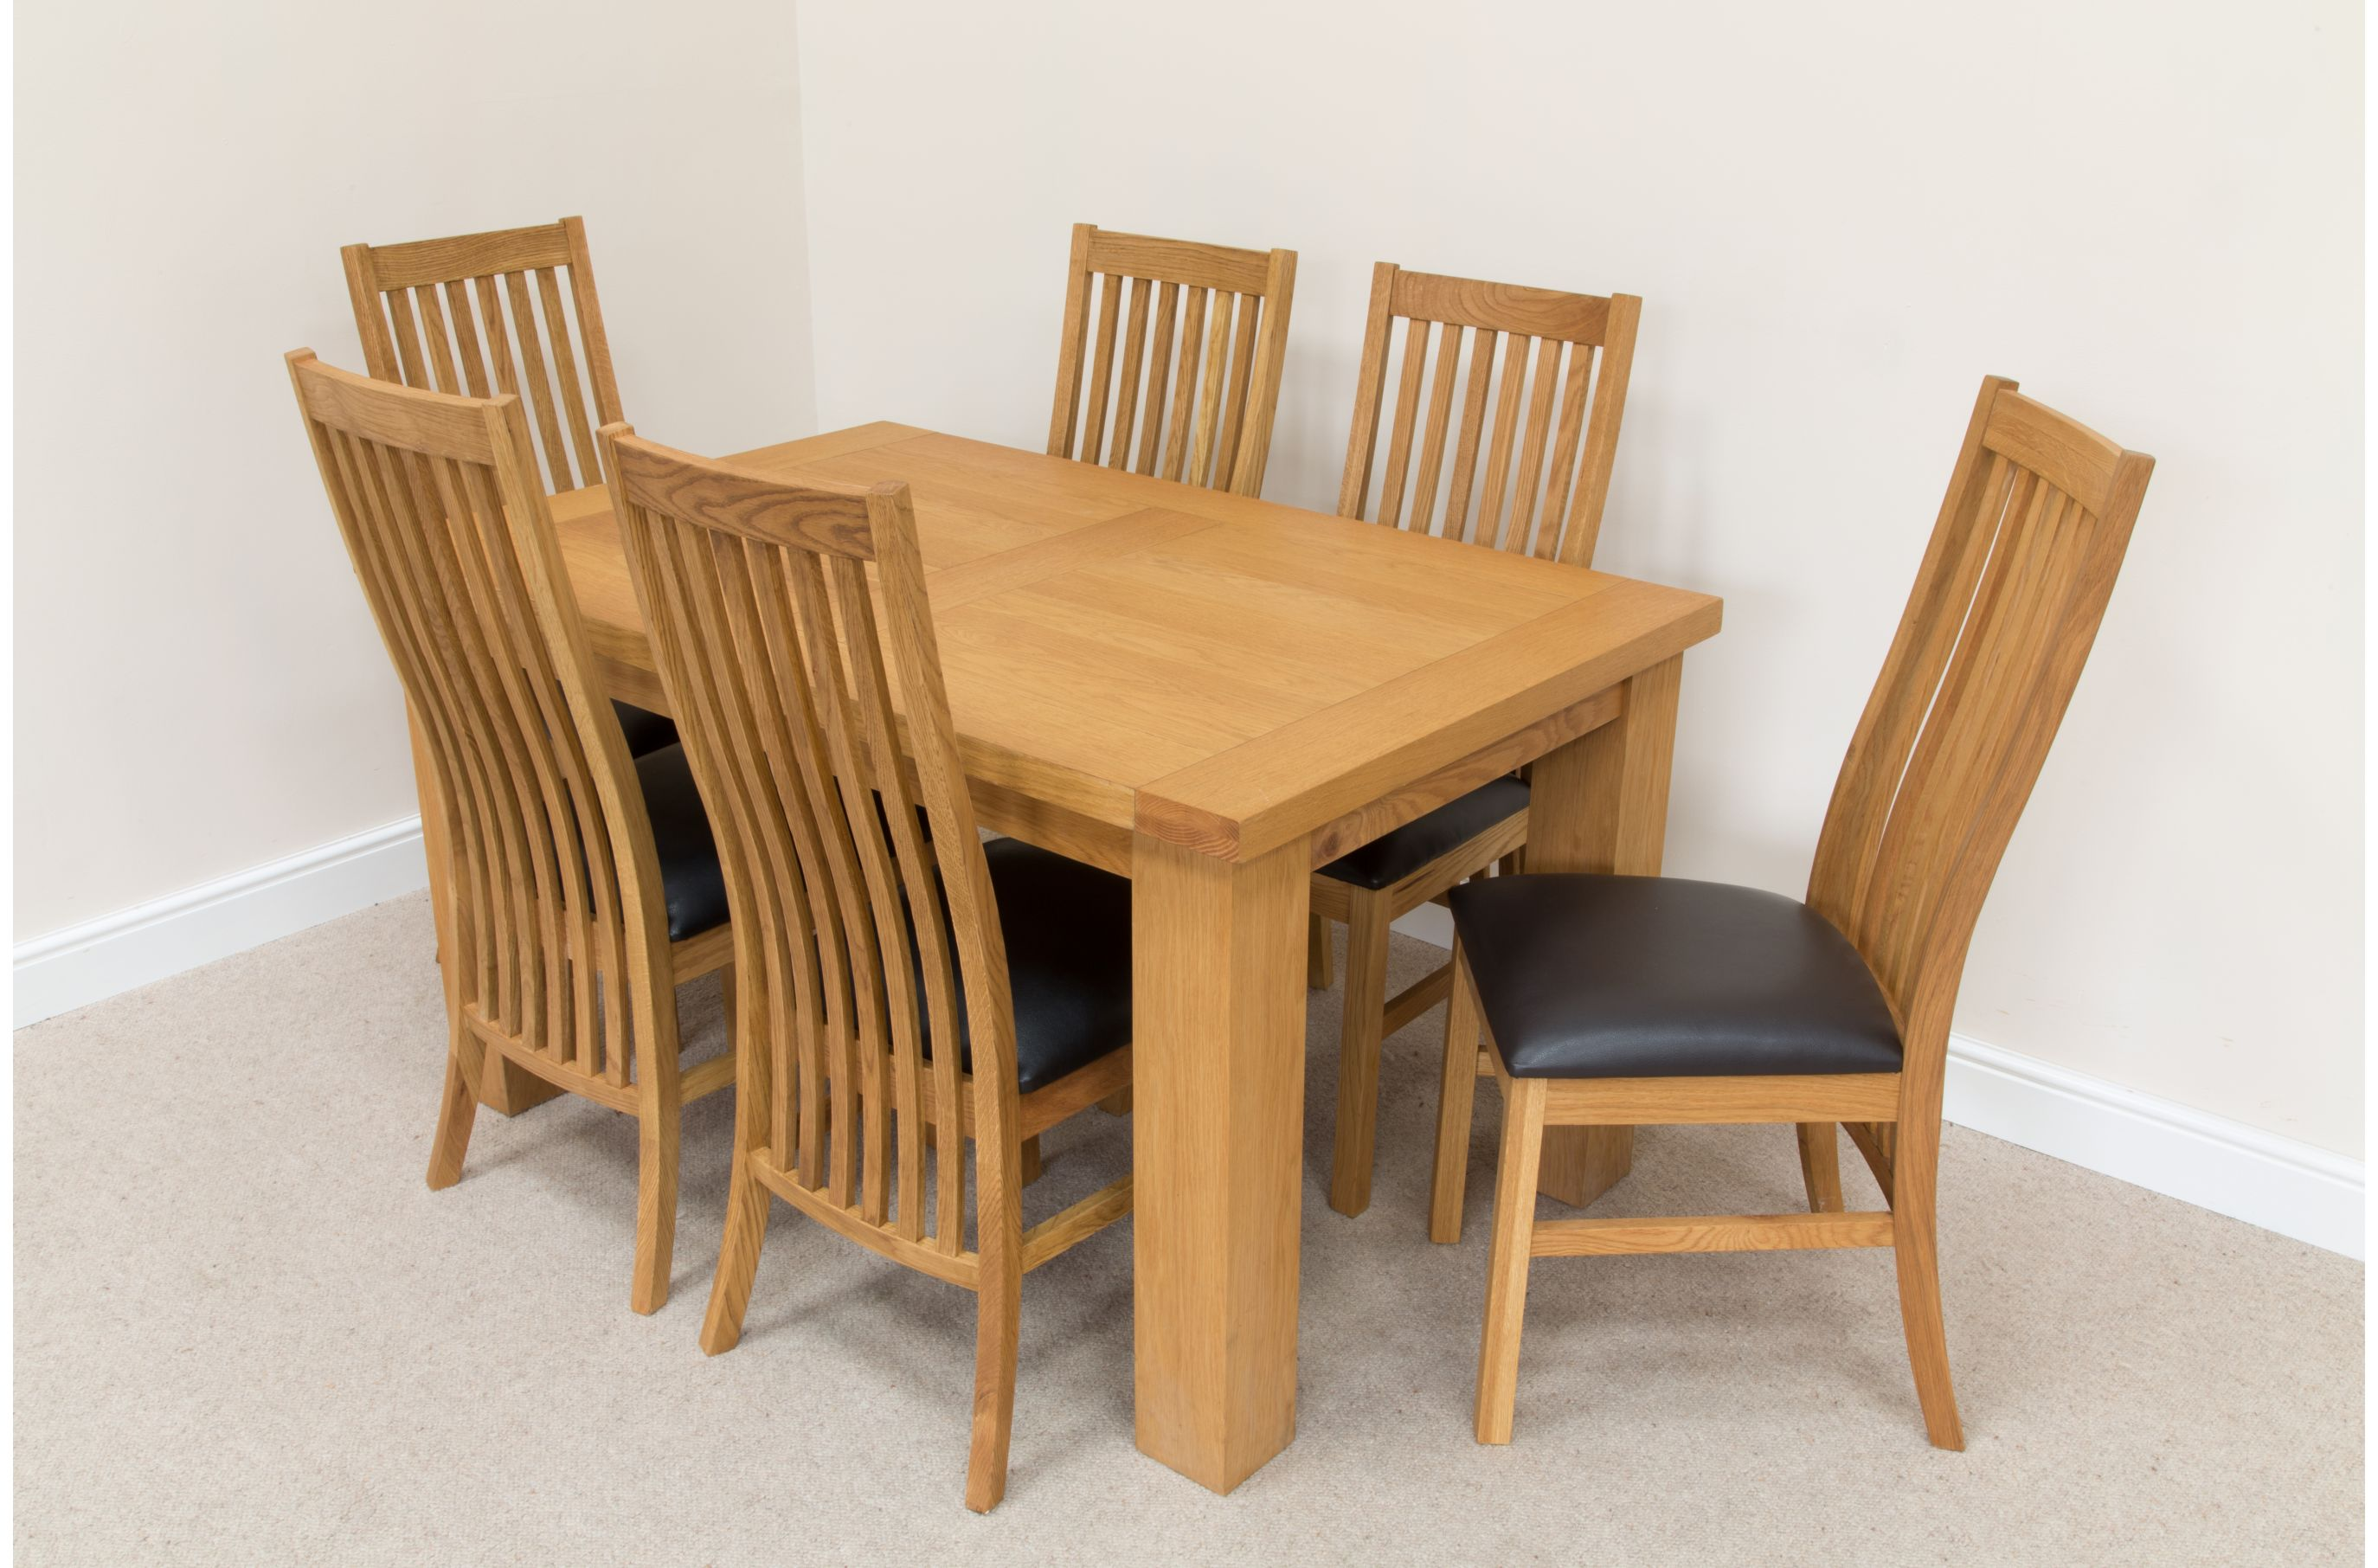 oak dining sets oak dining table and chairs uk home extending 8 interior design: full size ZSFXCZU